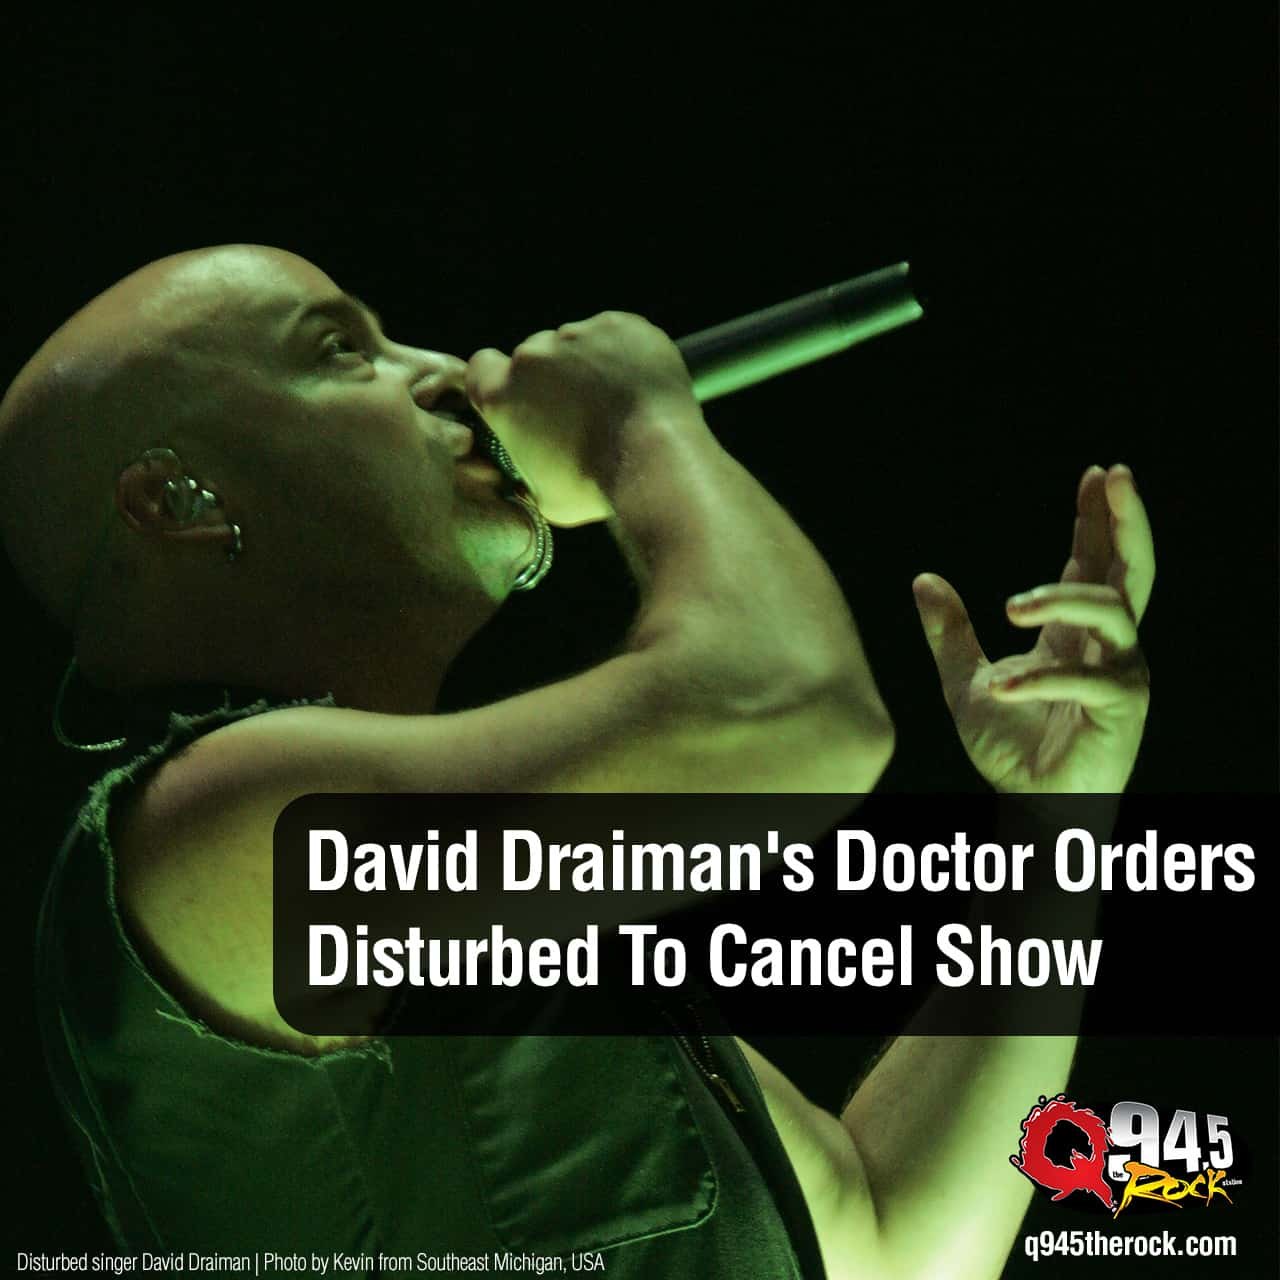 David Draiman's Doctor Orders Disturbed To Cancel Show